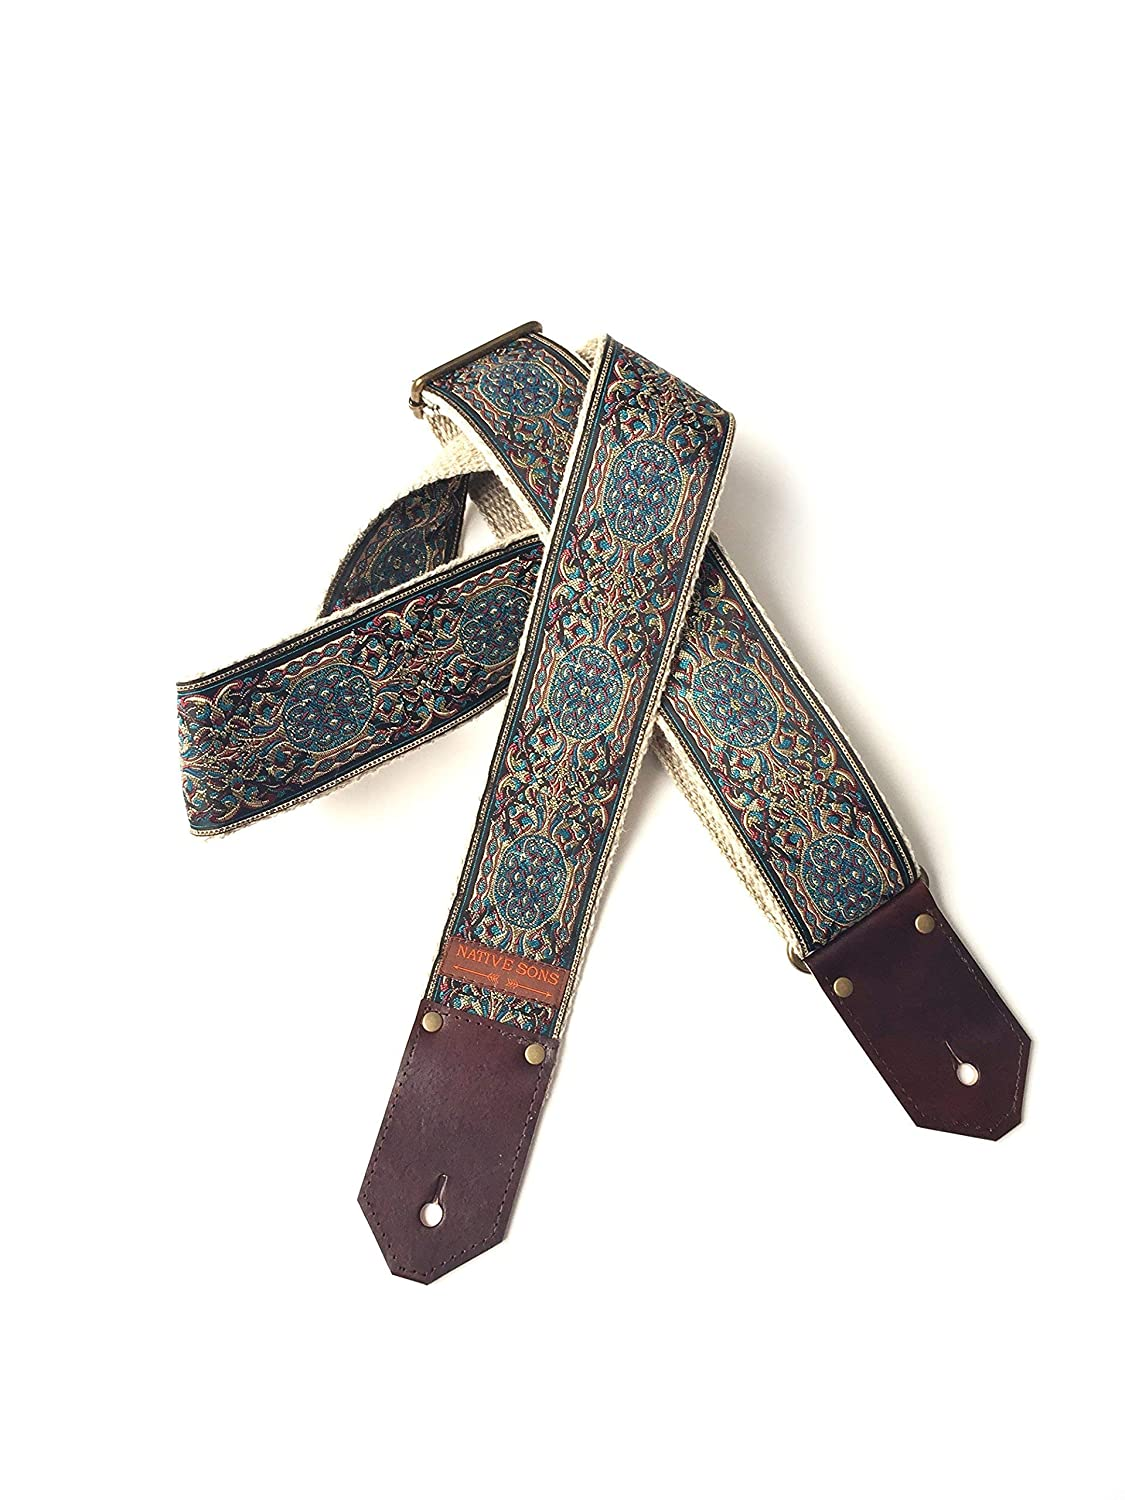 The Calypso Guitar Strap by Native Sons - Vintage style tapestry strap in blue and earth tones with hemp or nylon and leather